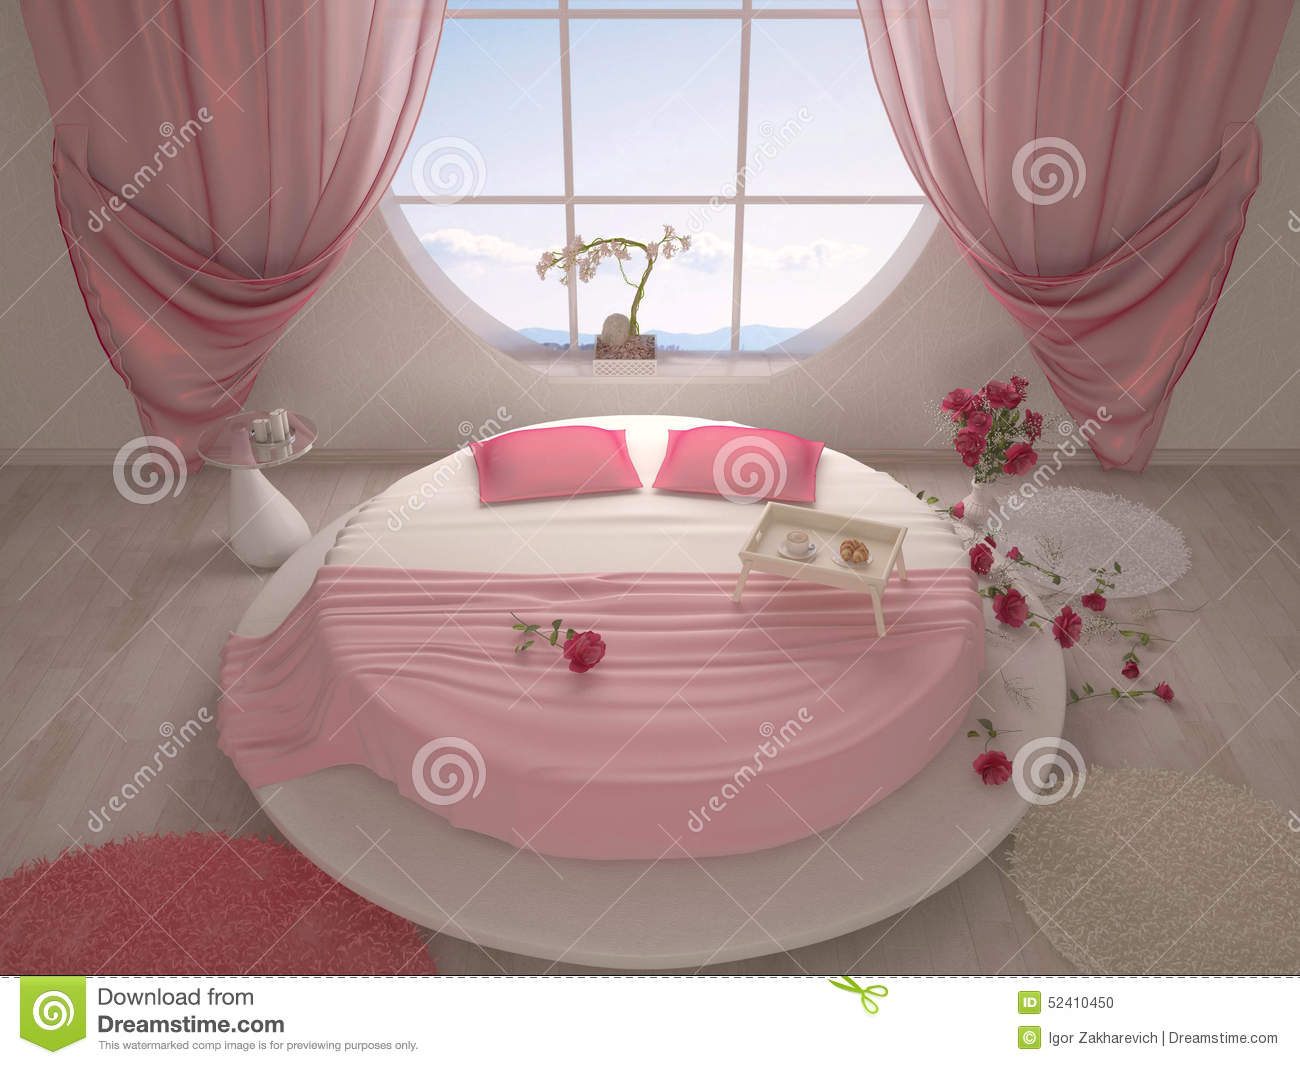 round bed with a suspended ceiling in bedroom royalty free stock photo 16970619. Black Bedroom Furniture Sets. Home Design Ideas